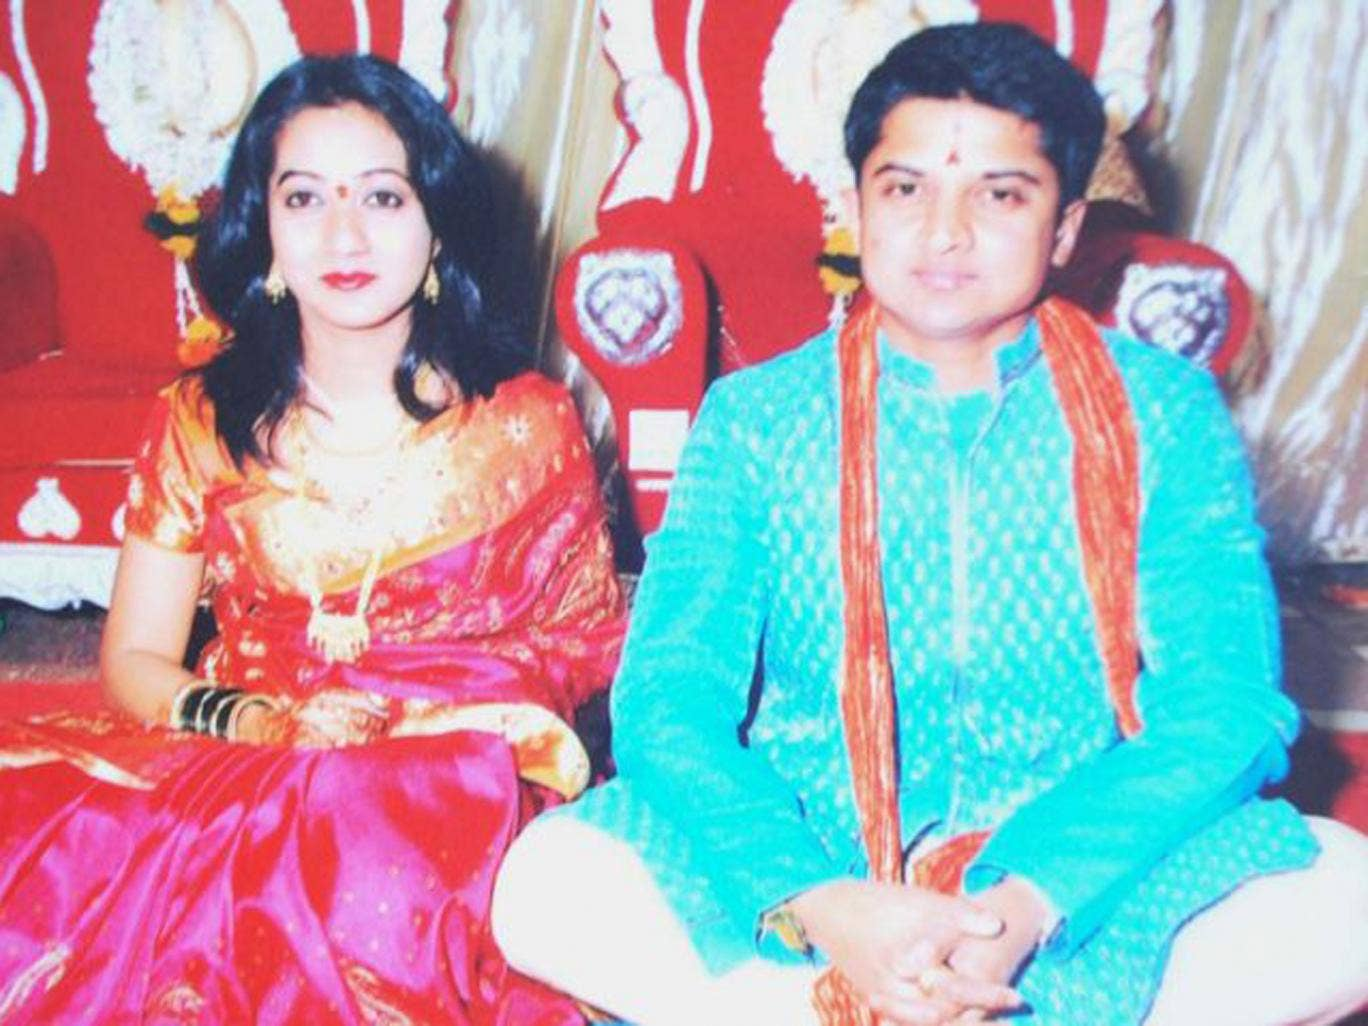 Savita and Praveen Halappanavar on their wedding day in 2008